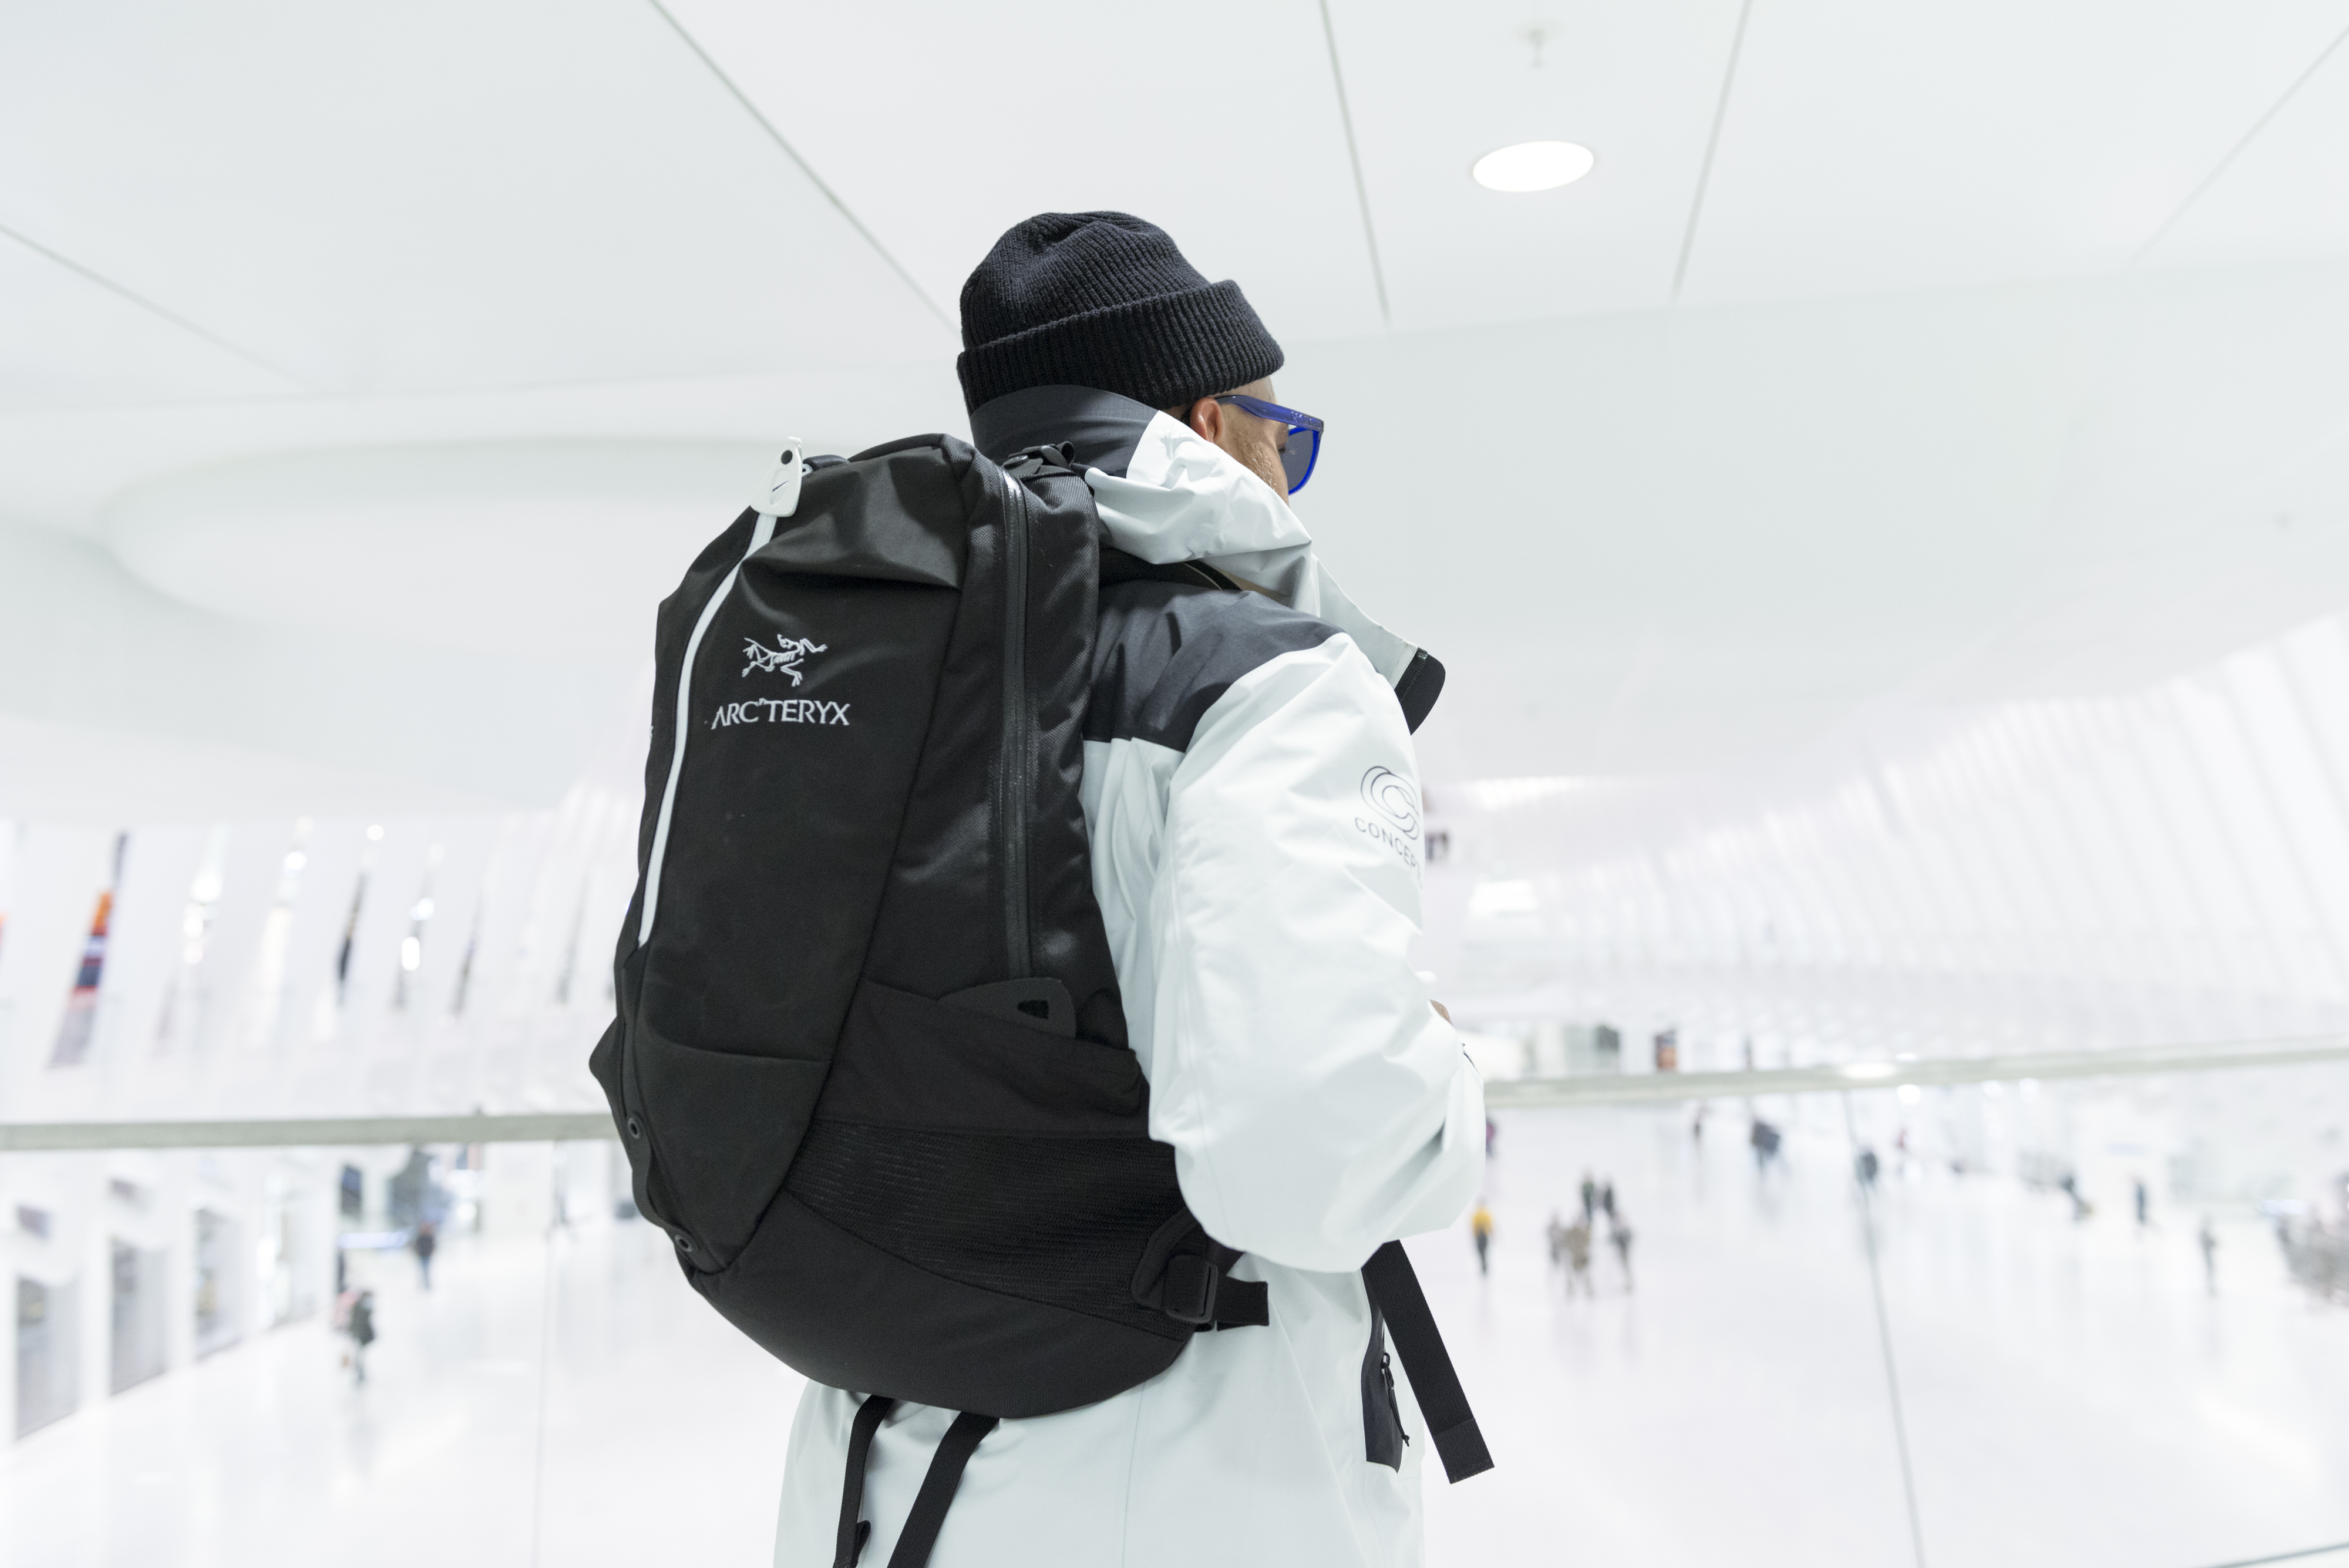 Concepts & Arc'teryx Release a Special Edition Beta SL Jacket and Arro 22 Backpack